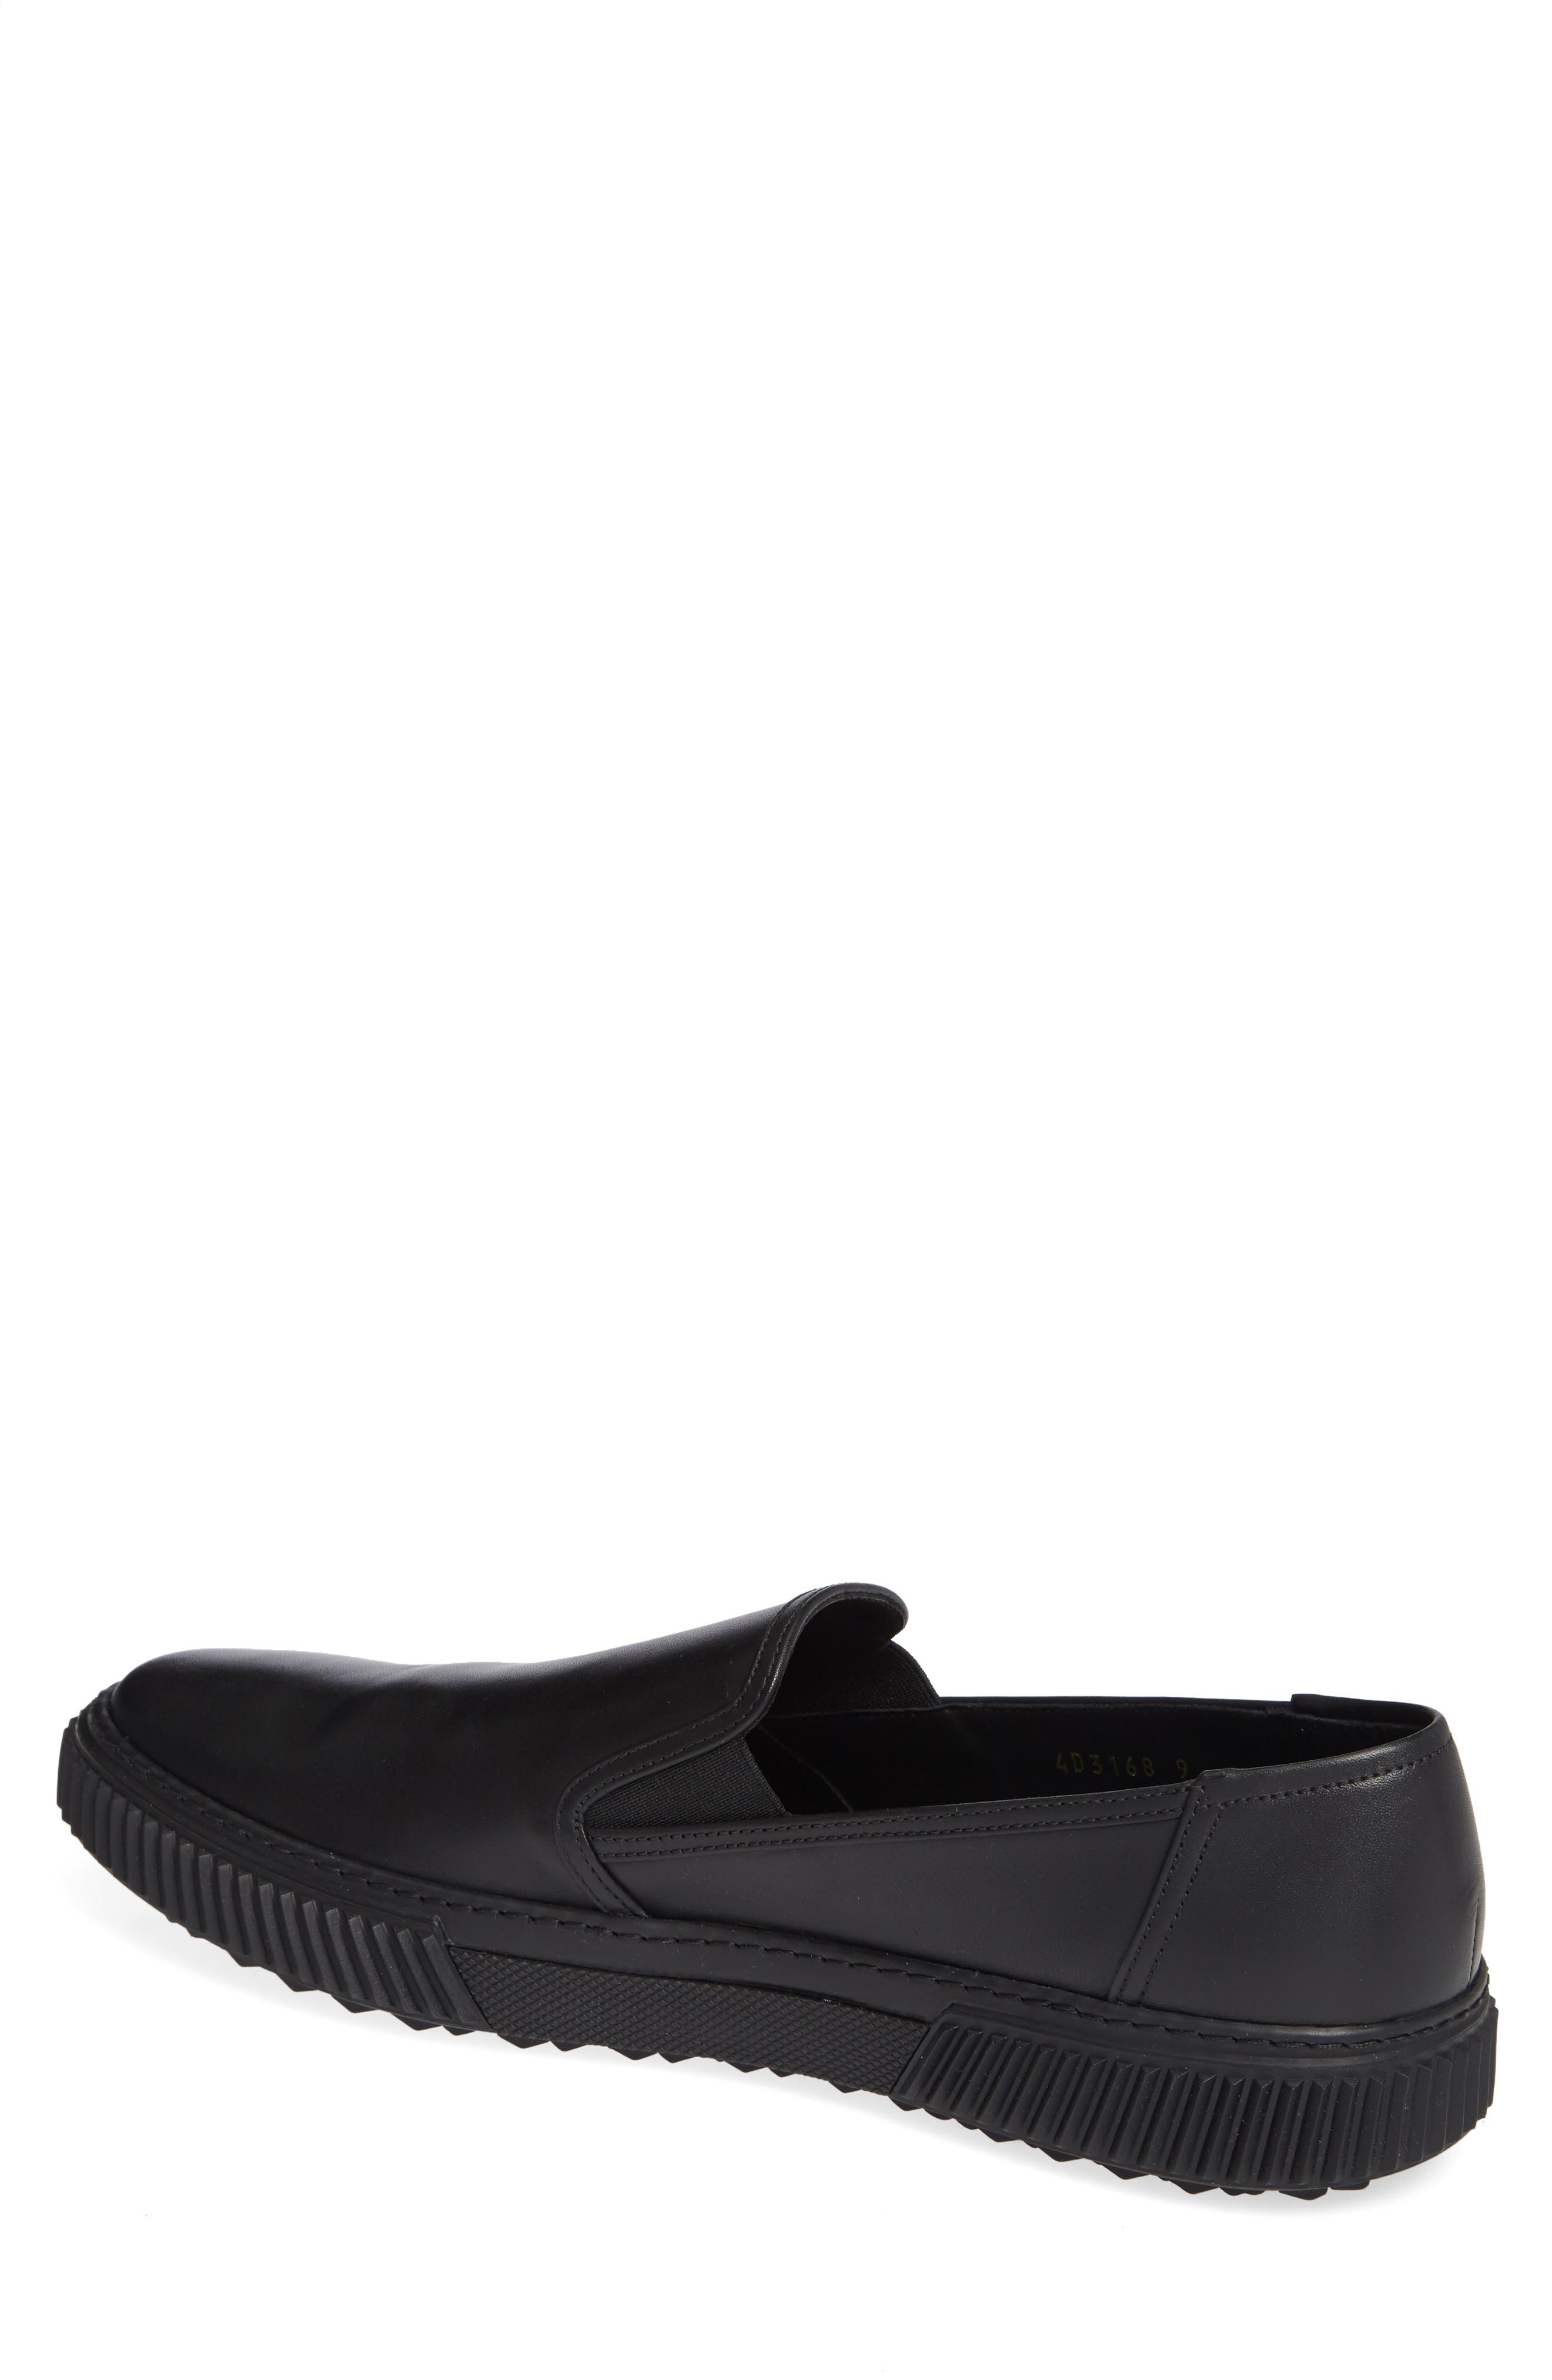 Stratus Slip-On Sneaker,                             Alternate thumbnail 2, color,                             NERO/ NERO